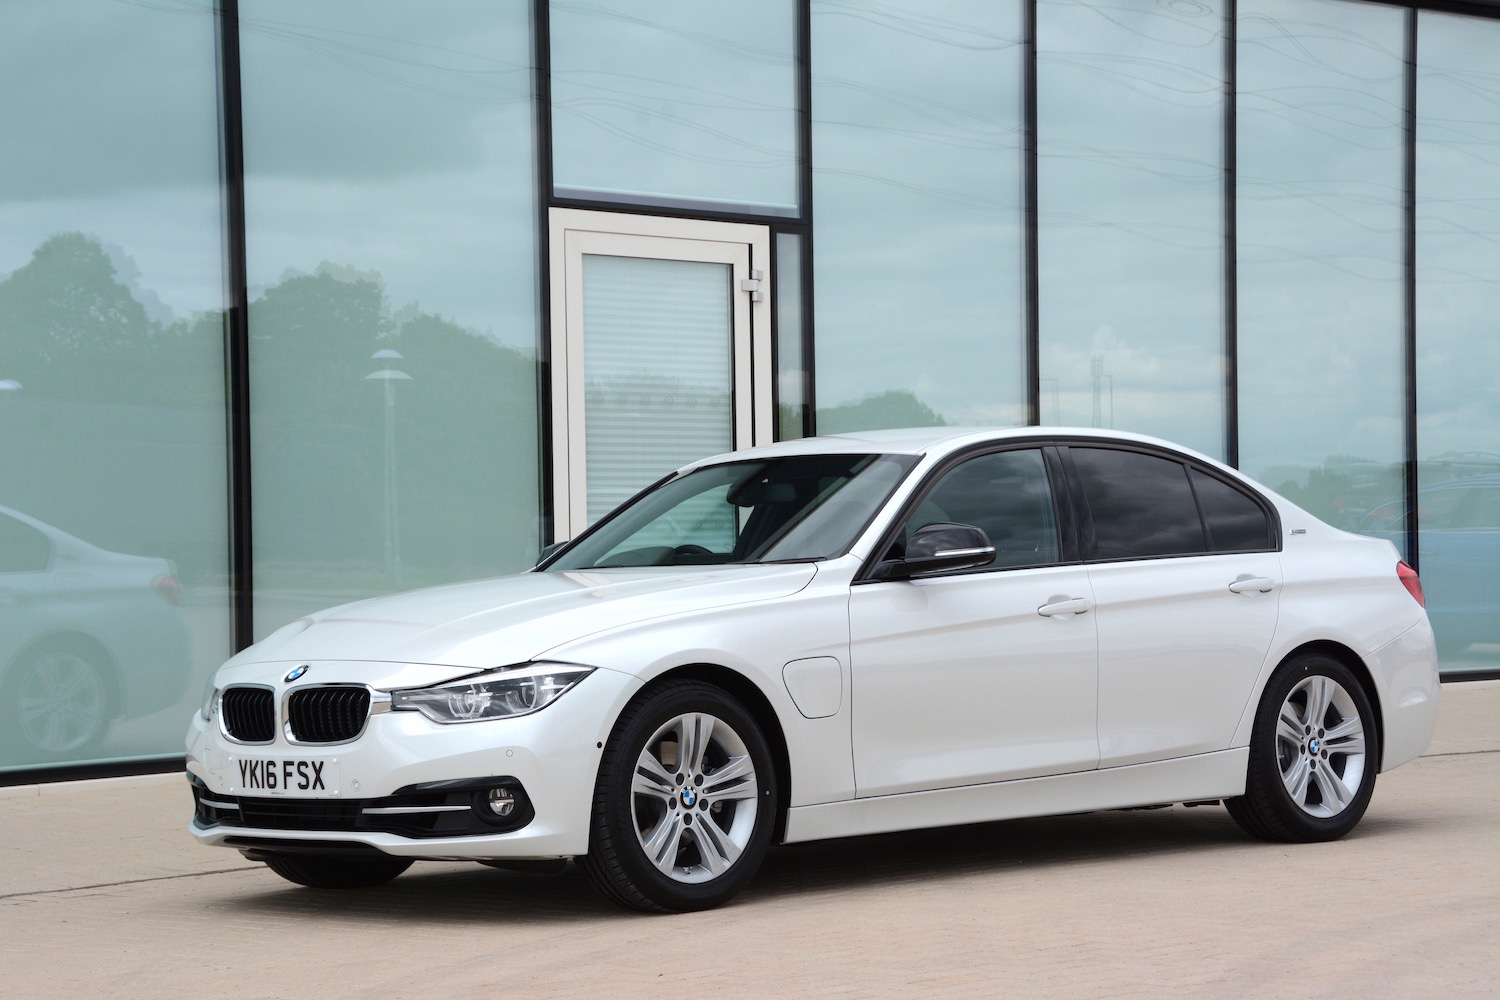 Bmw 330e Review Uk Bmw 330e Saloon Review Greencarguide Co Uk